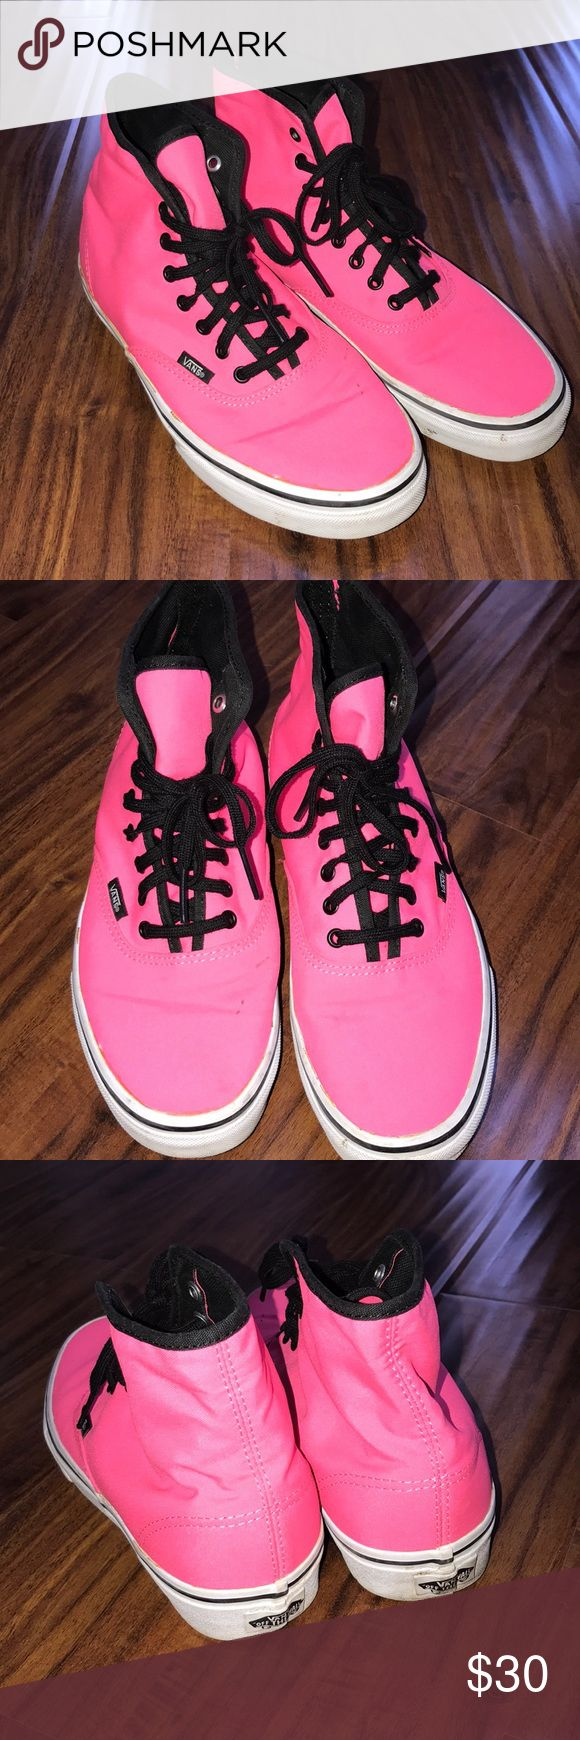 High Top Hot Pink Vans In great preowned condition.  Only worn a couple of times.  There are a few spots on front that can be spot cleaned.  See all photos.  Size men 7, worn 8.5 Vans Shoes Sneakers